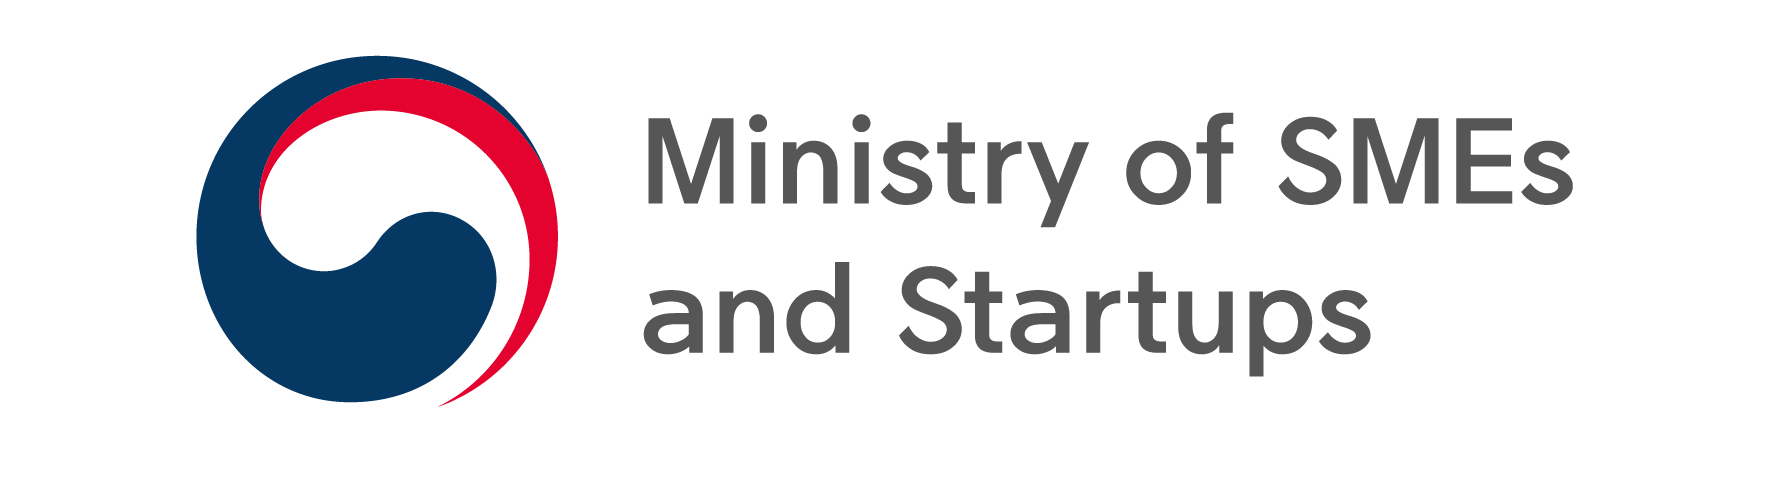 Ministry of SMEs & Startups